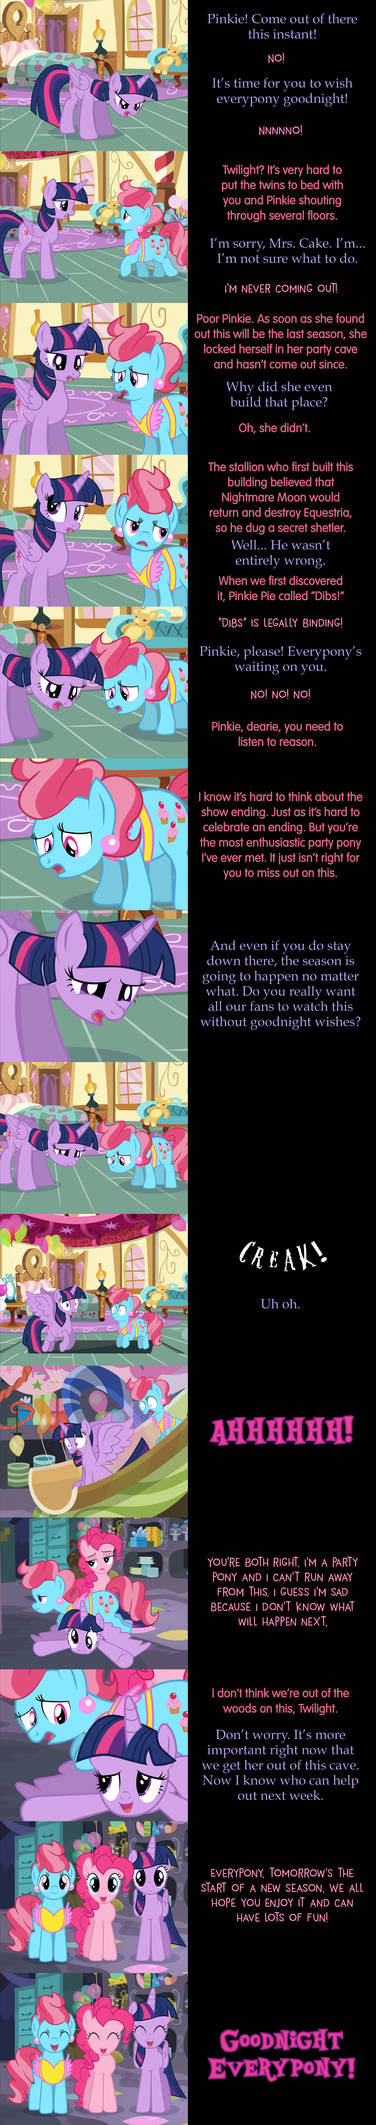 pinkie_pie_says_goodnight__bunker_buster